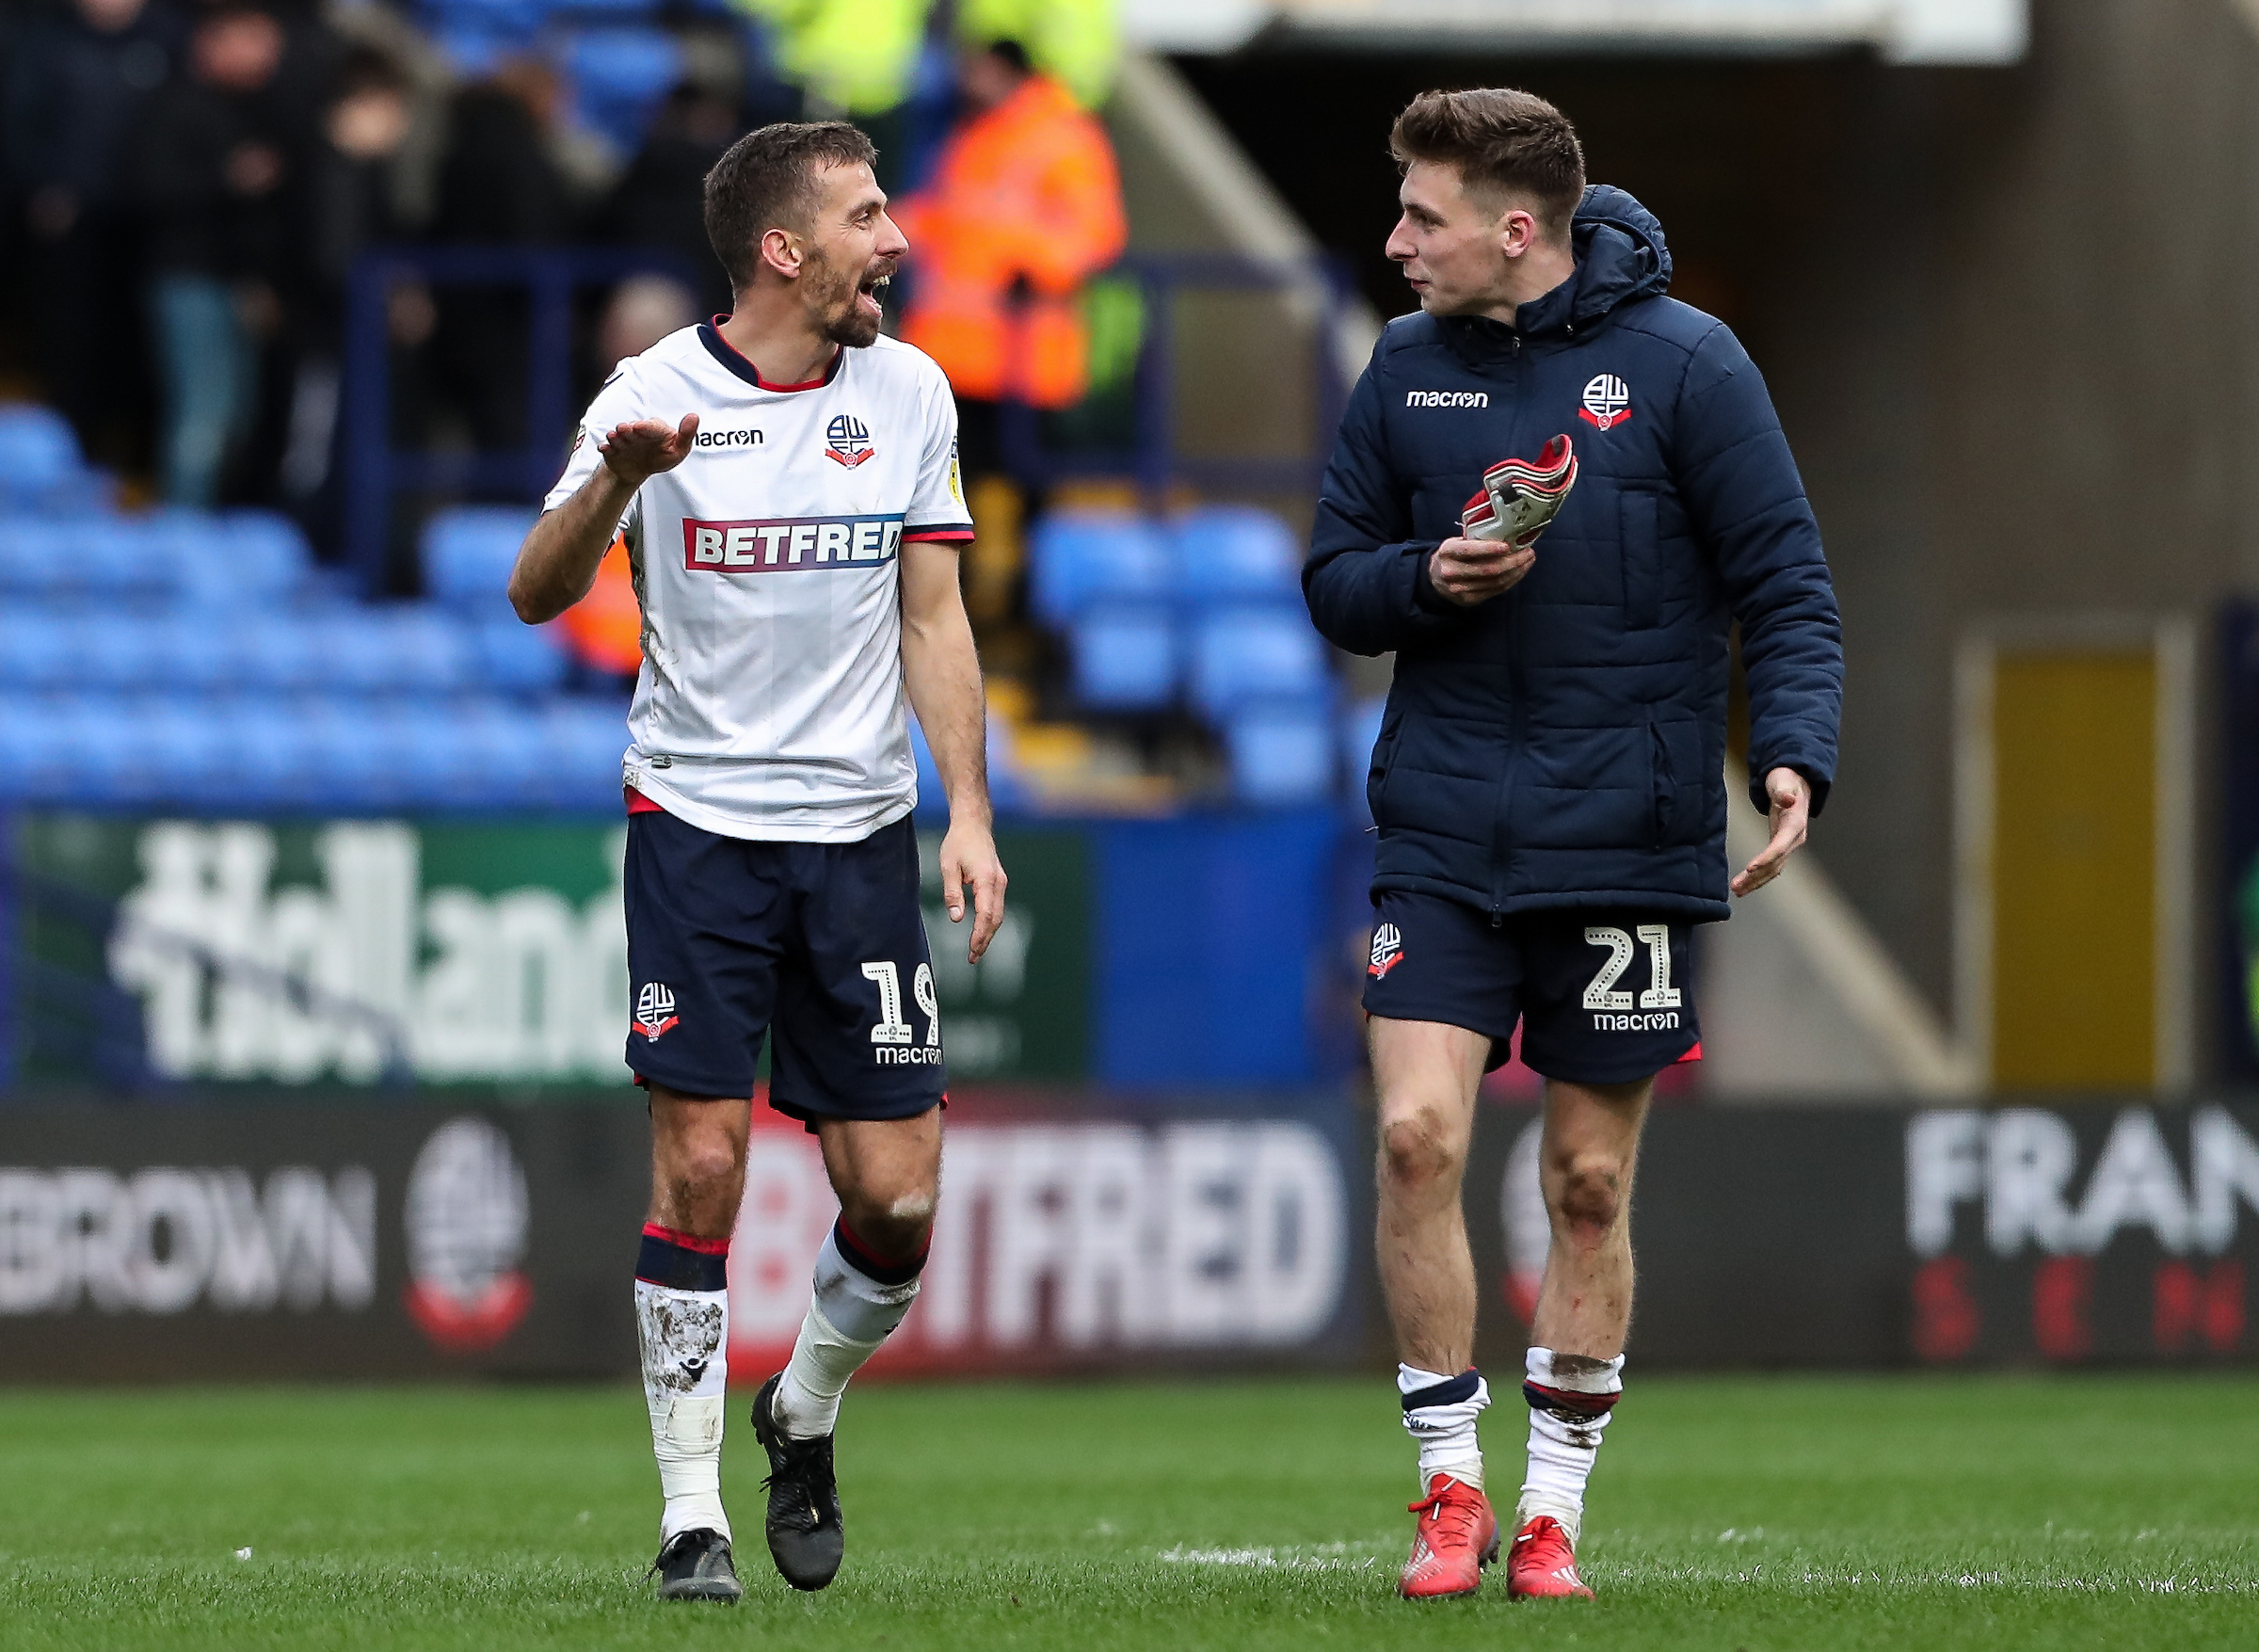 Gary O'Neil and Joe Williams have a chat after the final whistle against Millwall